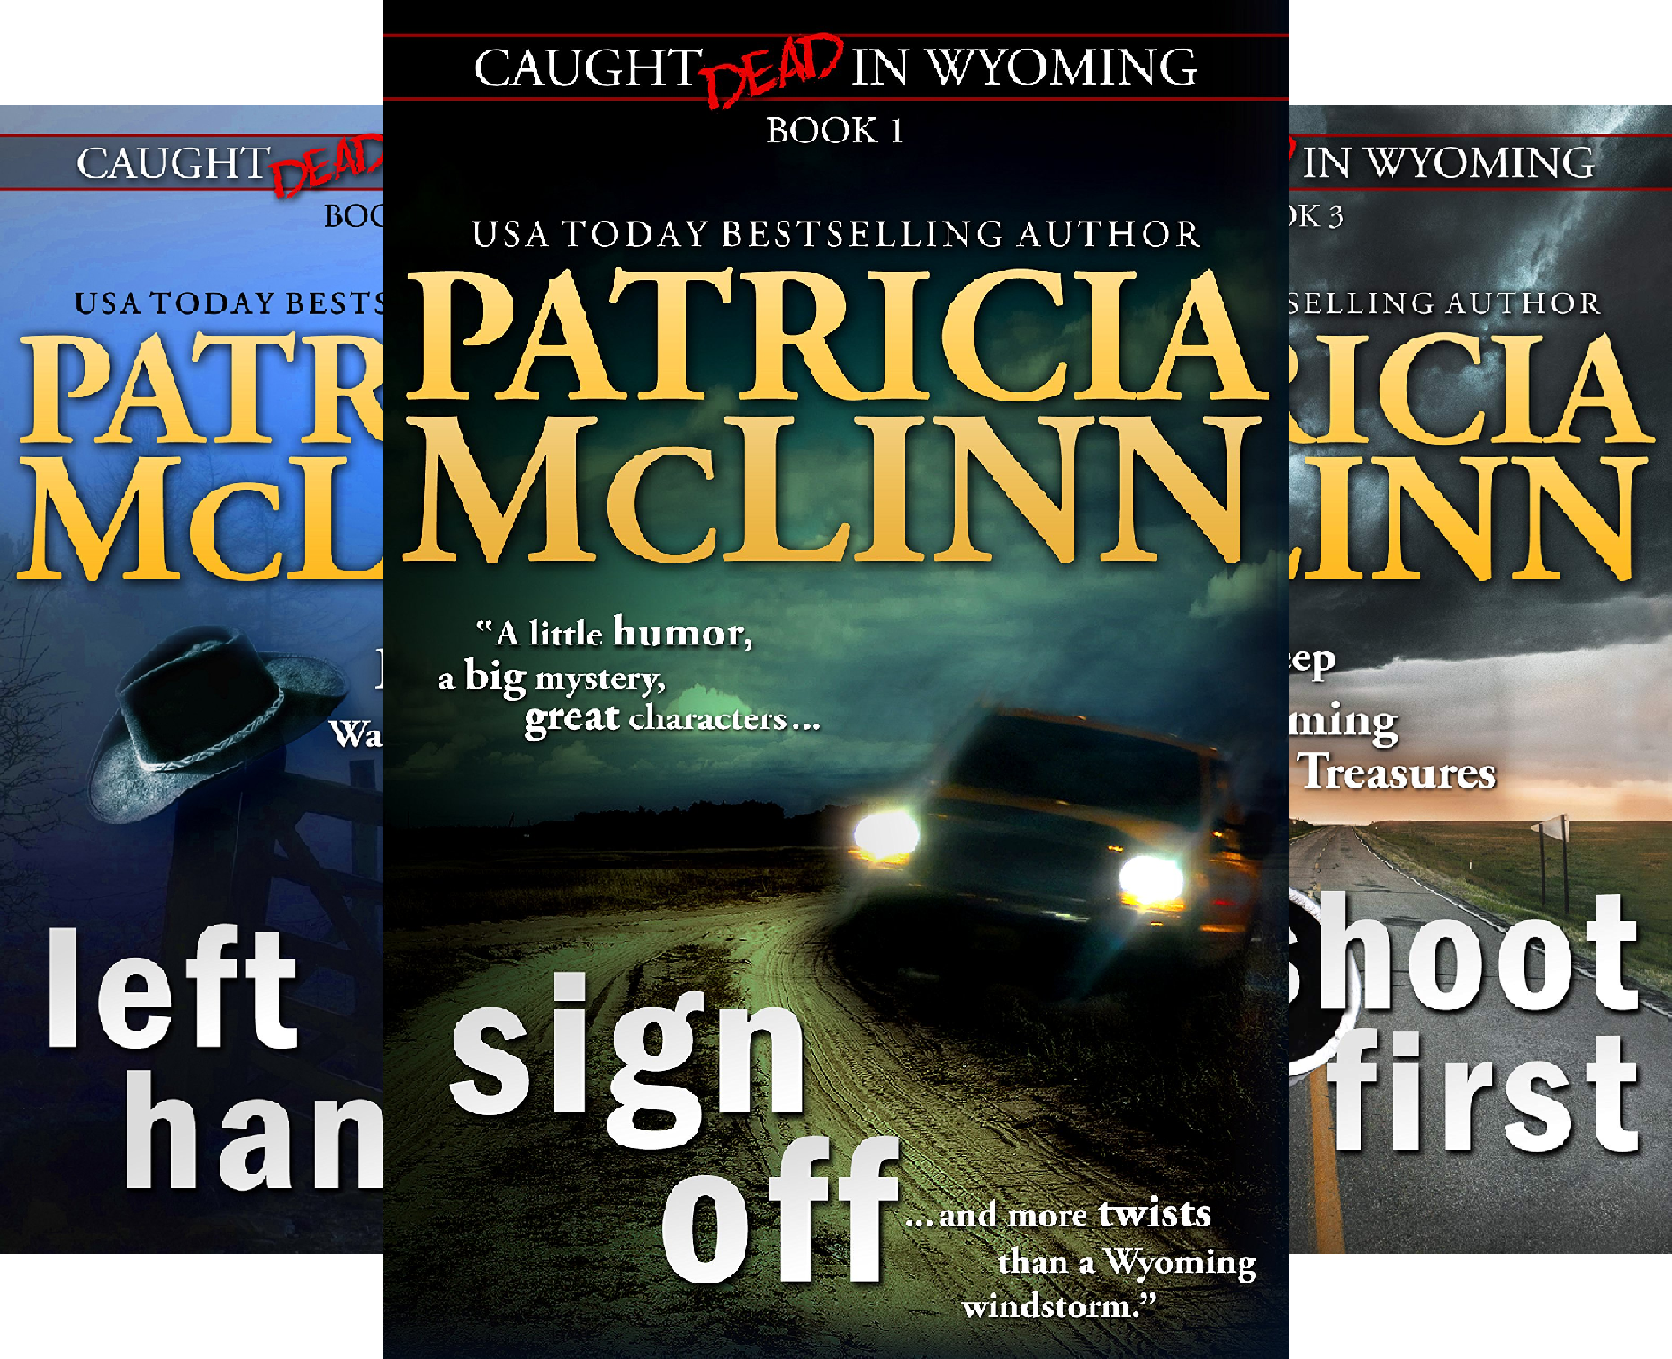 Caught Dead In Wyoming (7 Book Series)